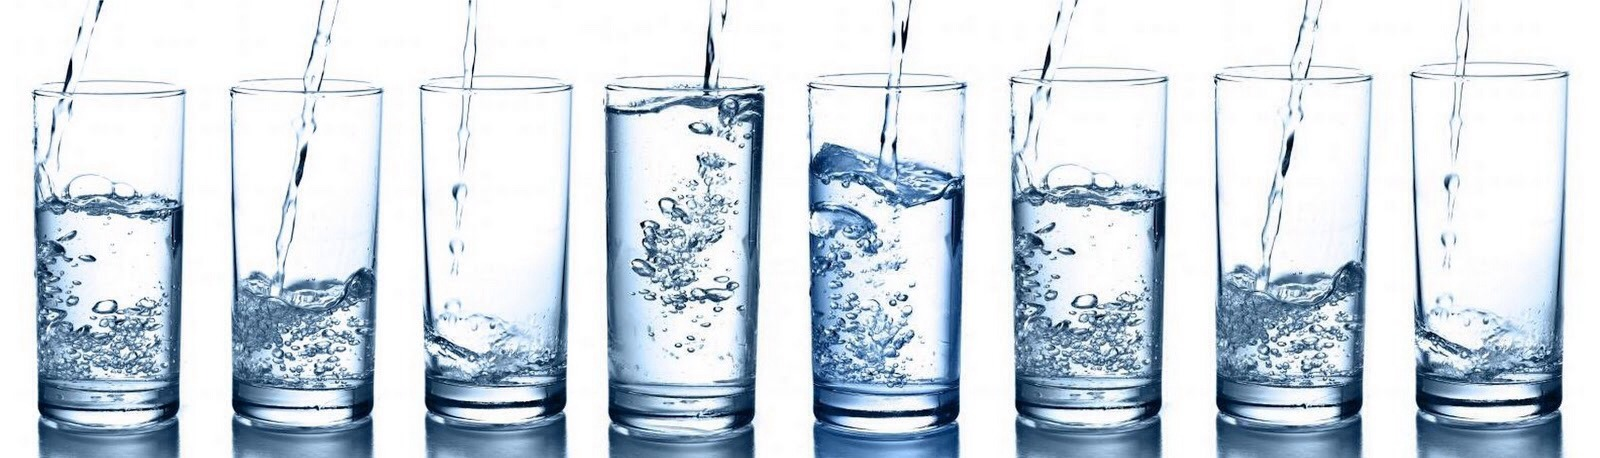 Hair Care Tip---Drink 8 glasses of water a day.  Water helps keep your hair silky and shiny.